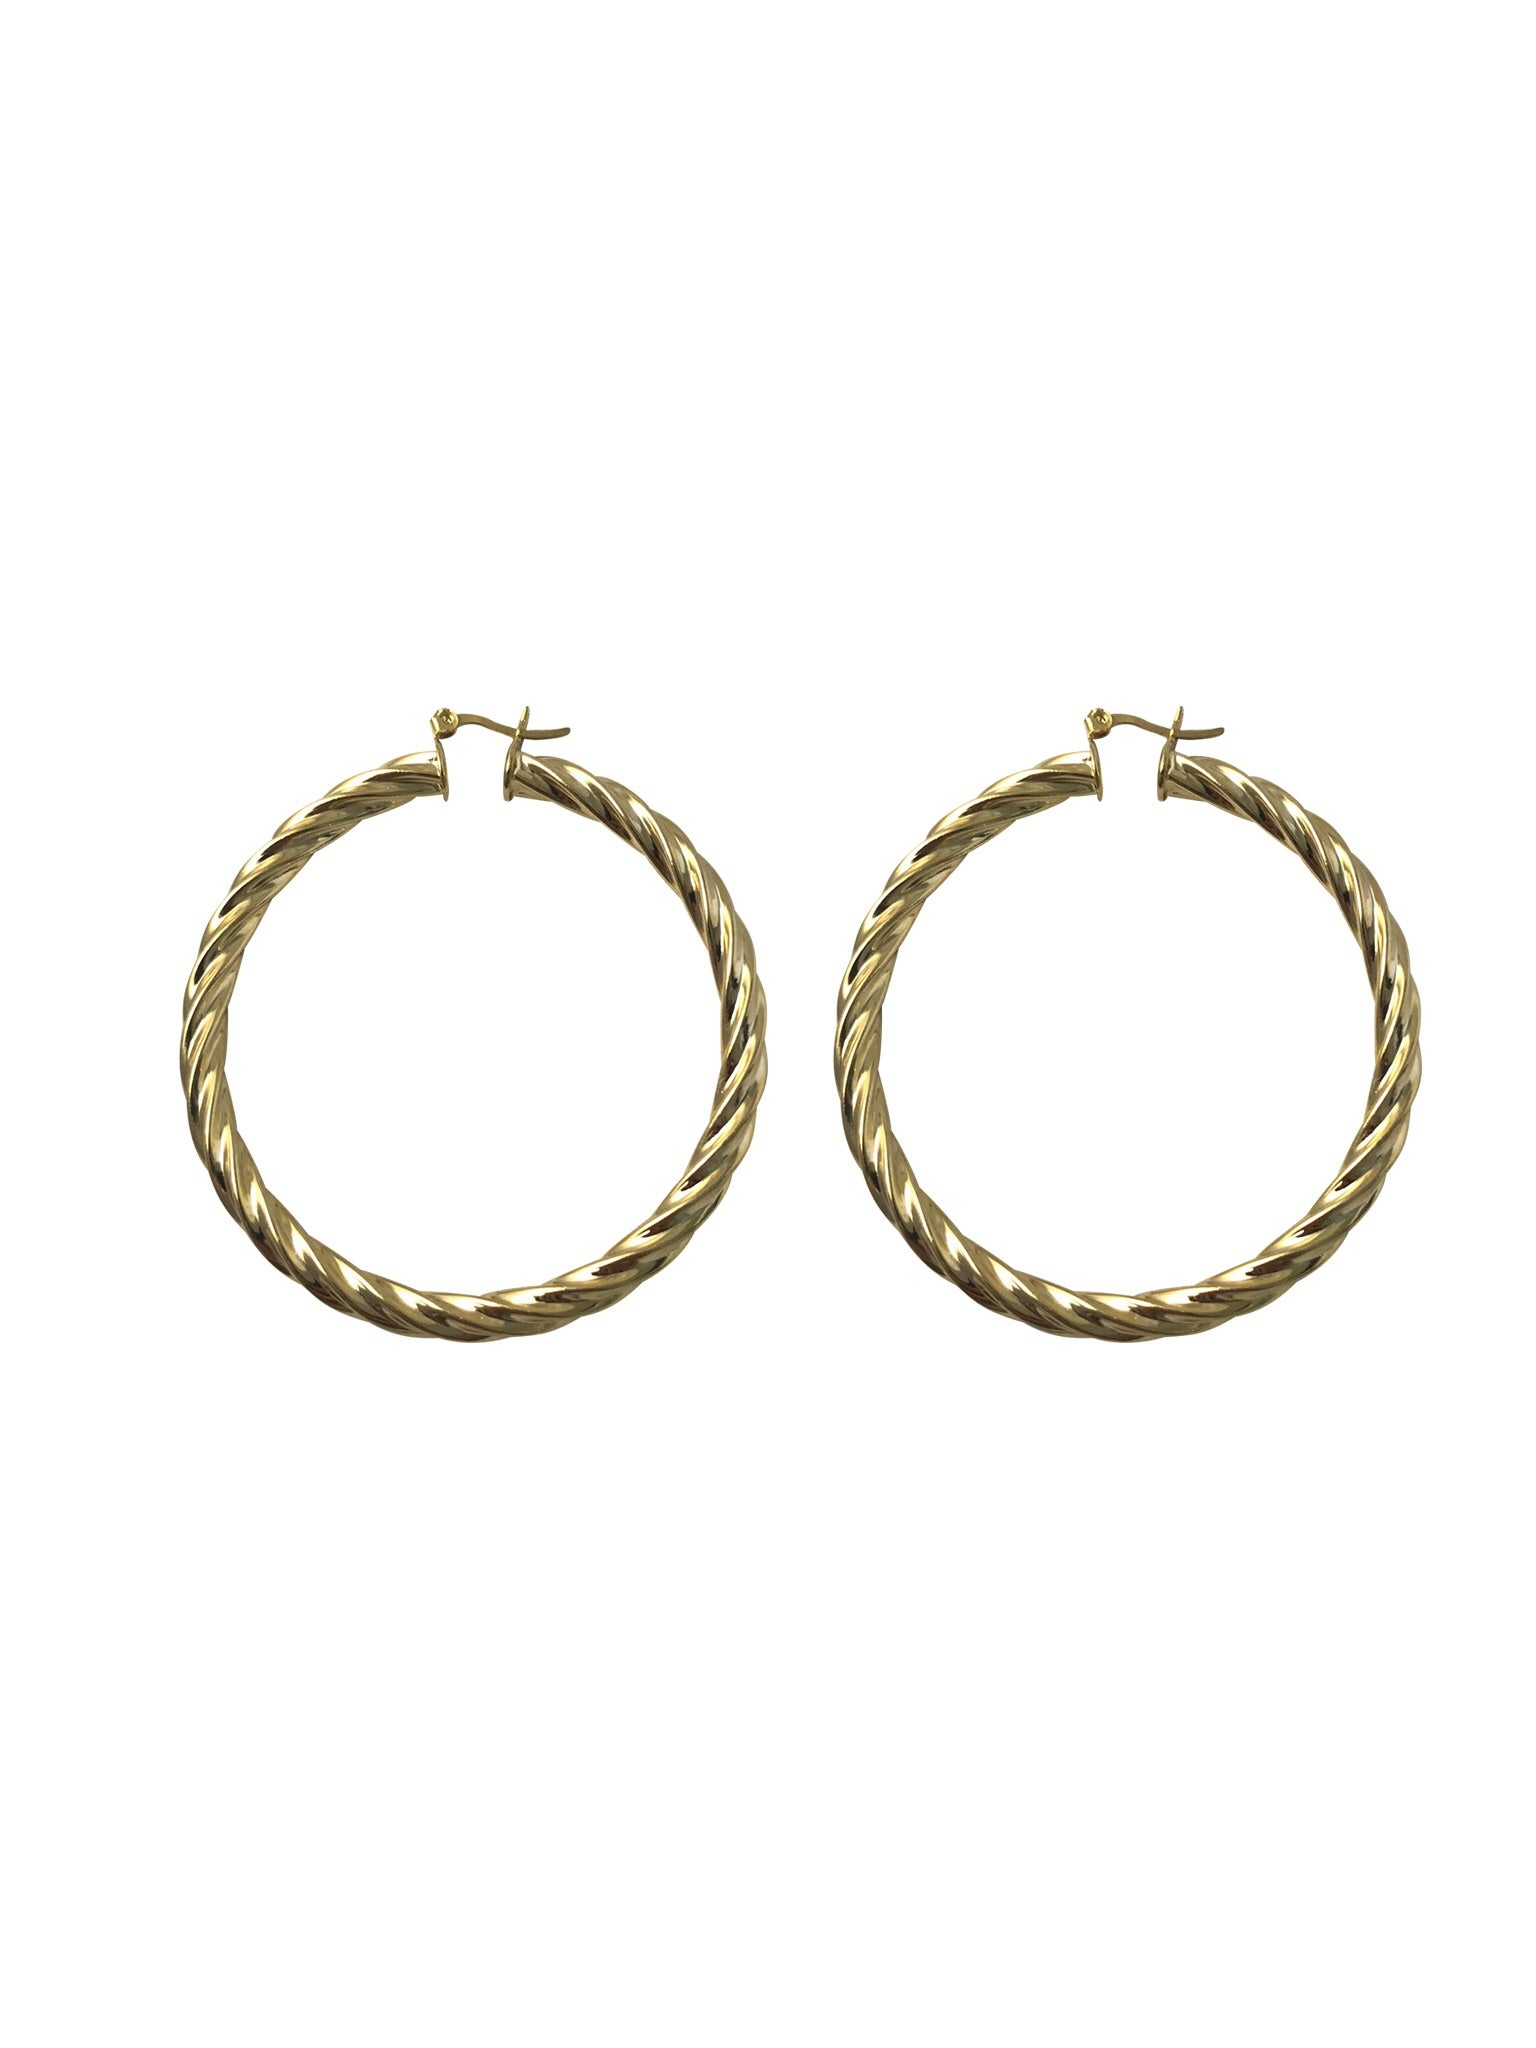 Bella Hoops - Gold Twisted Hoops